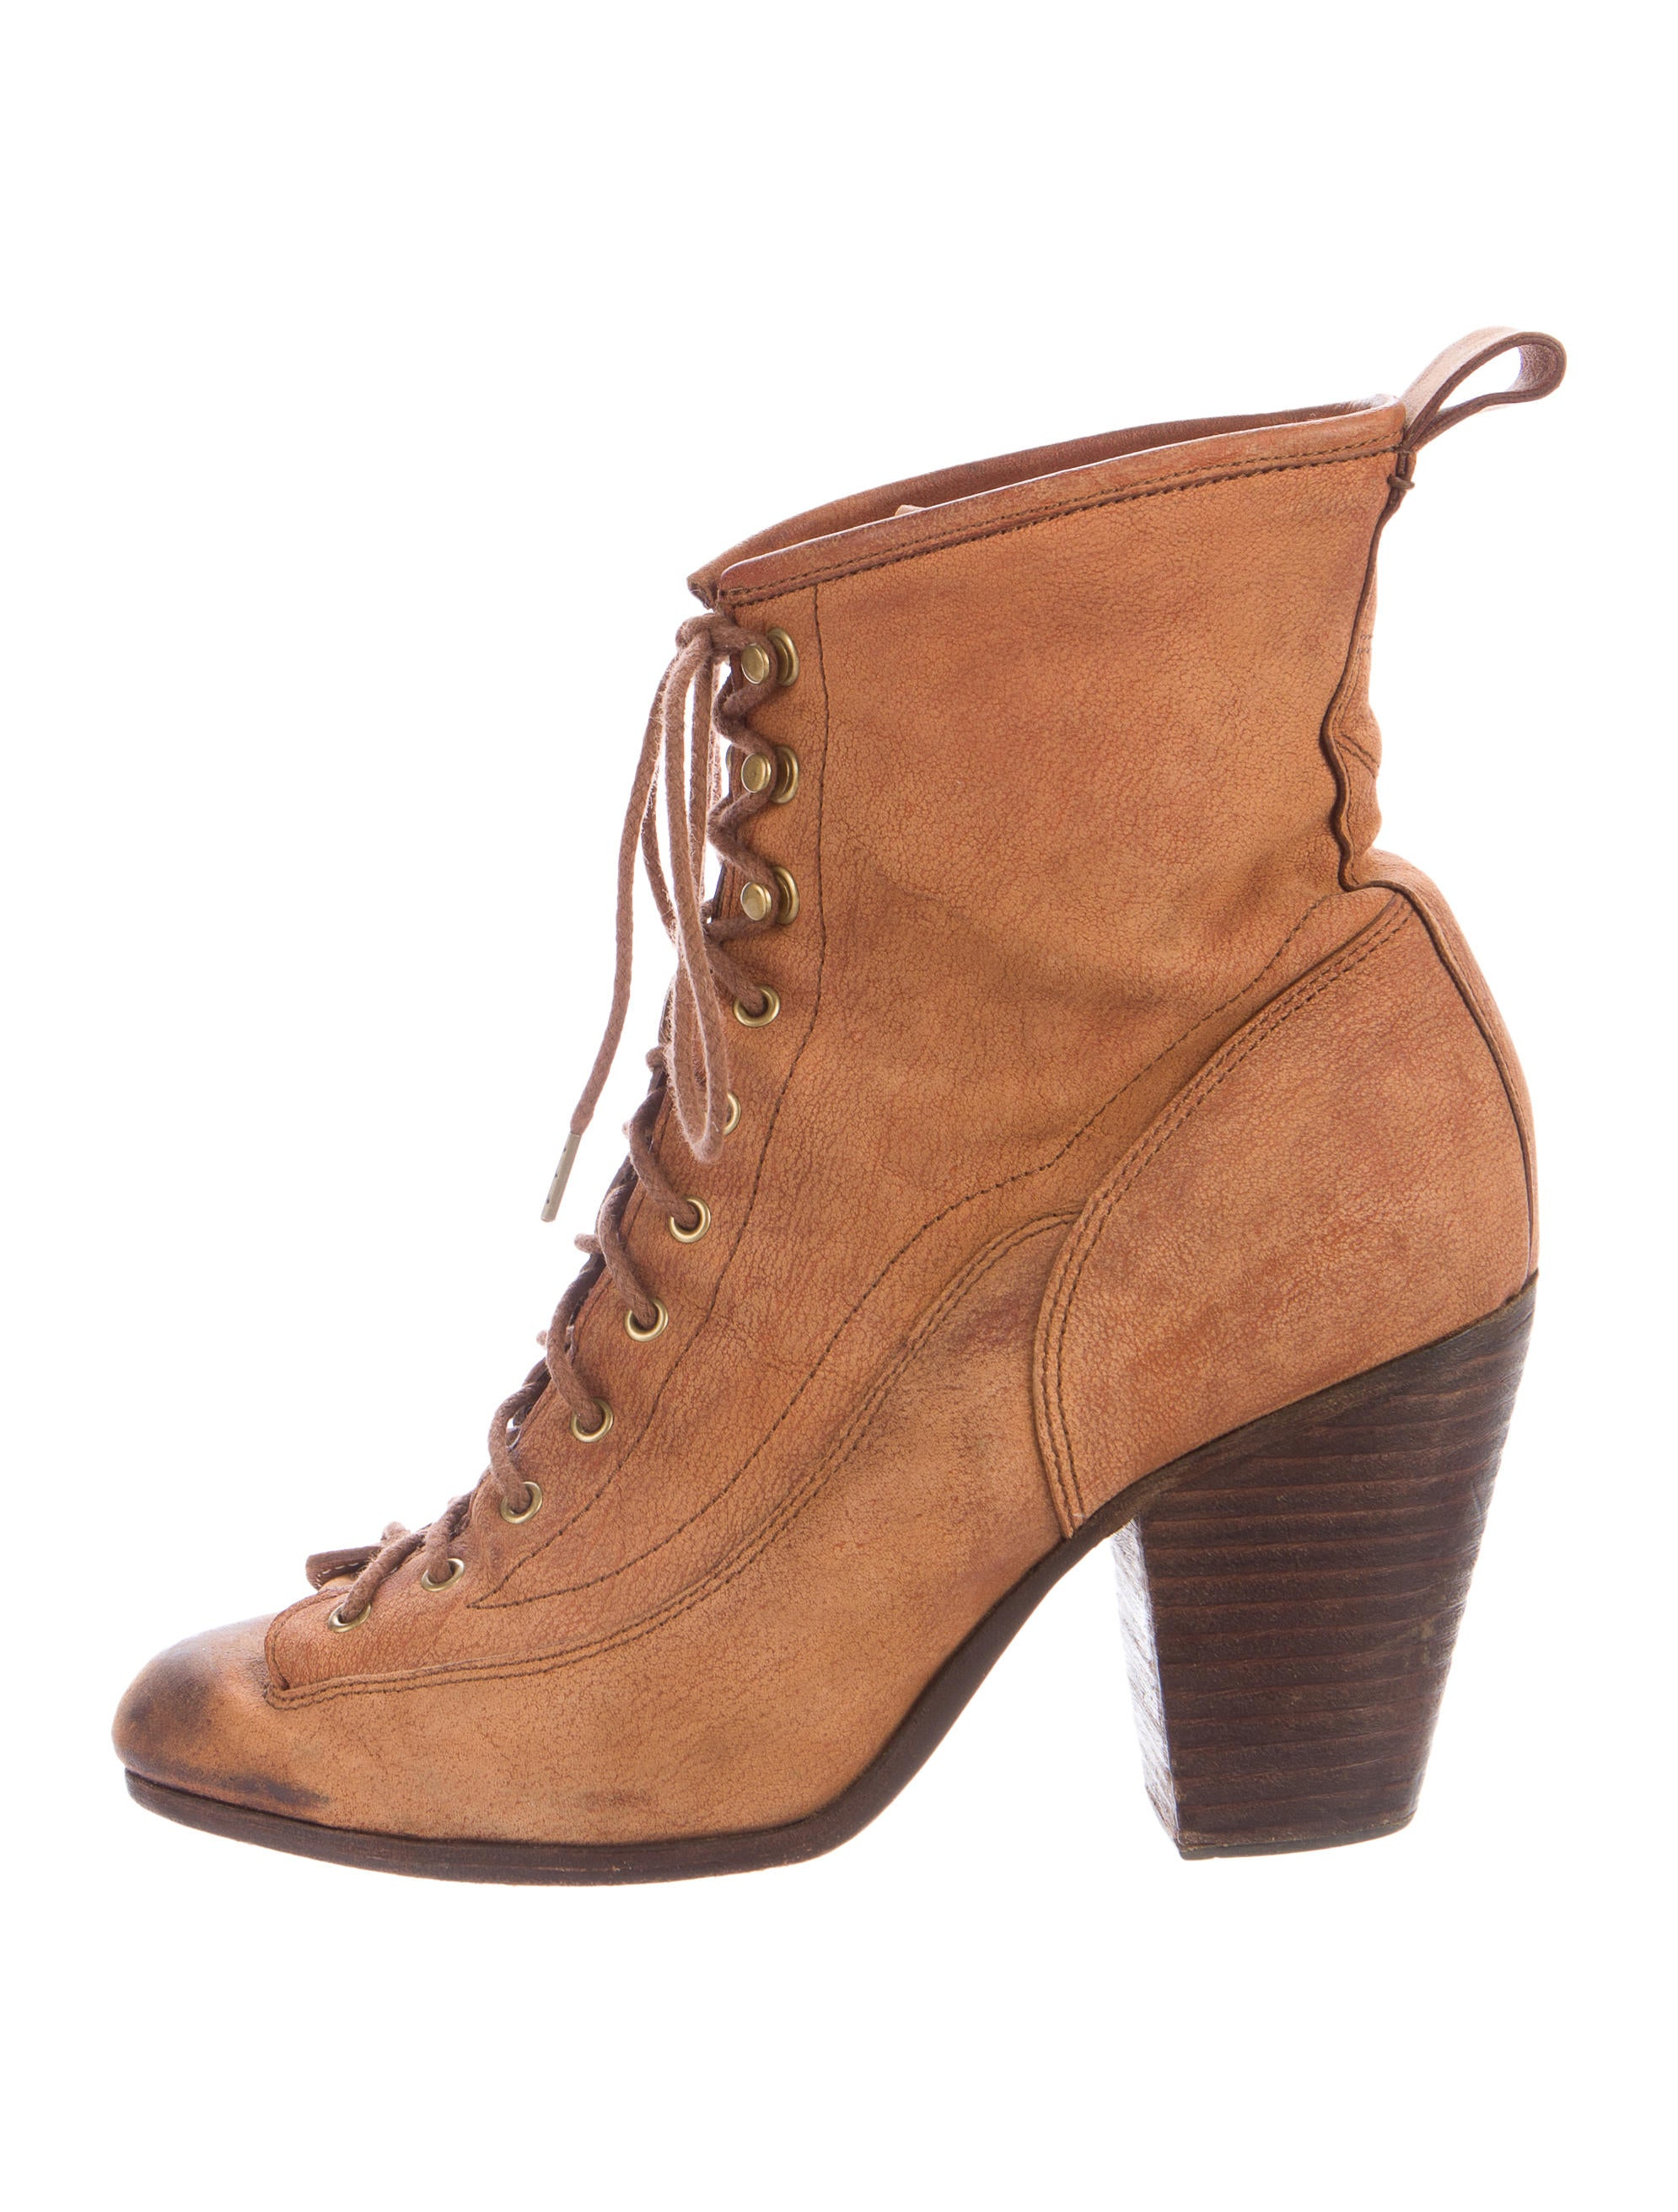 rag bone suede distressed boots shoes wragb64466